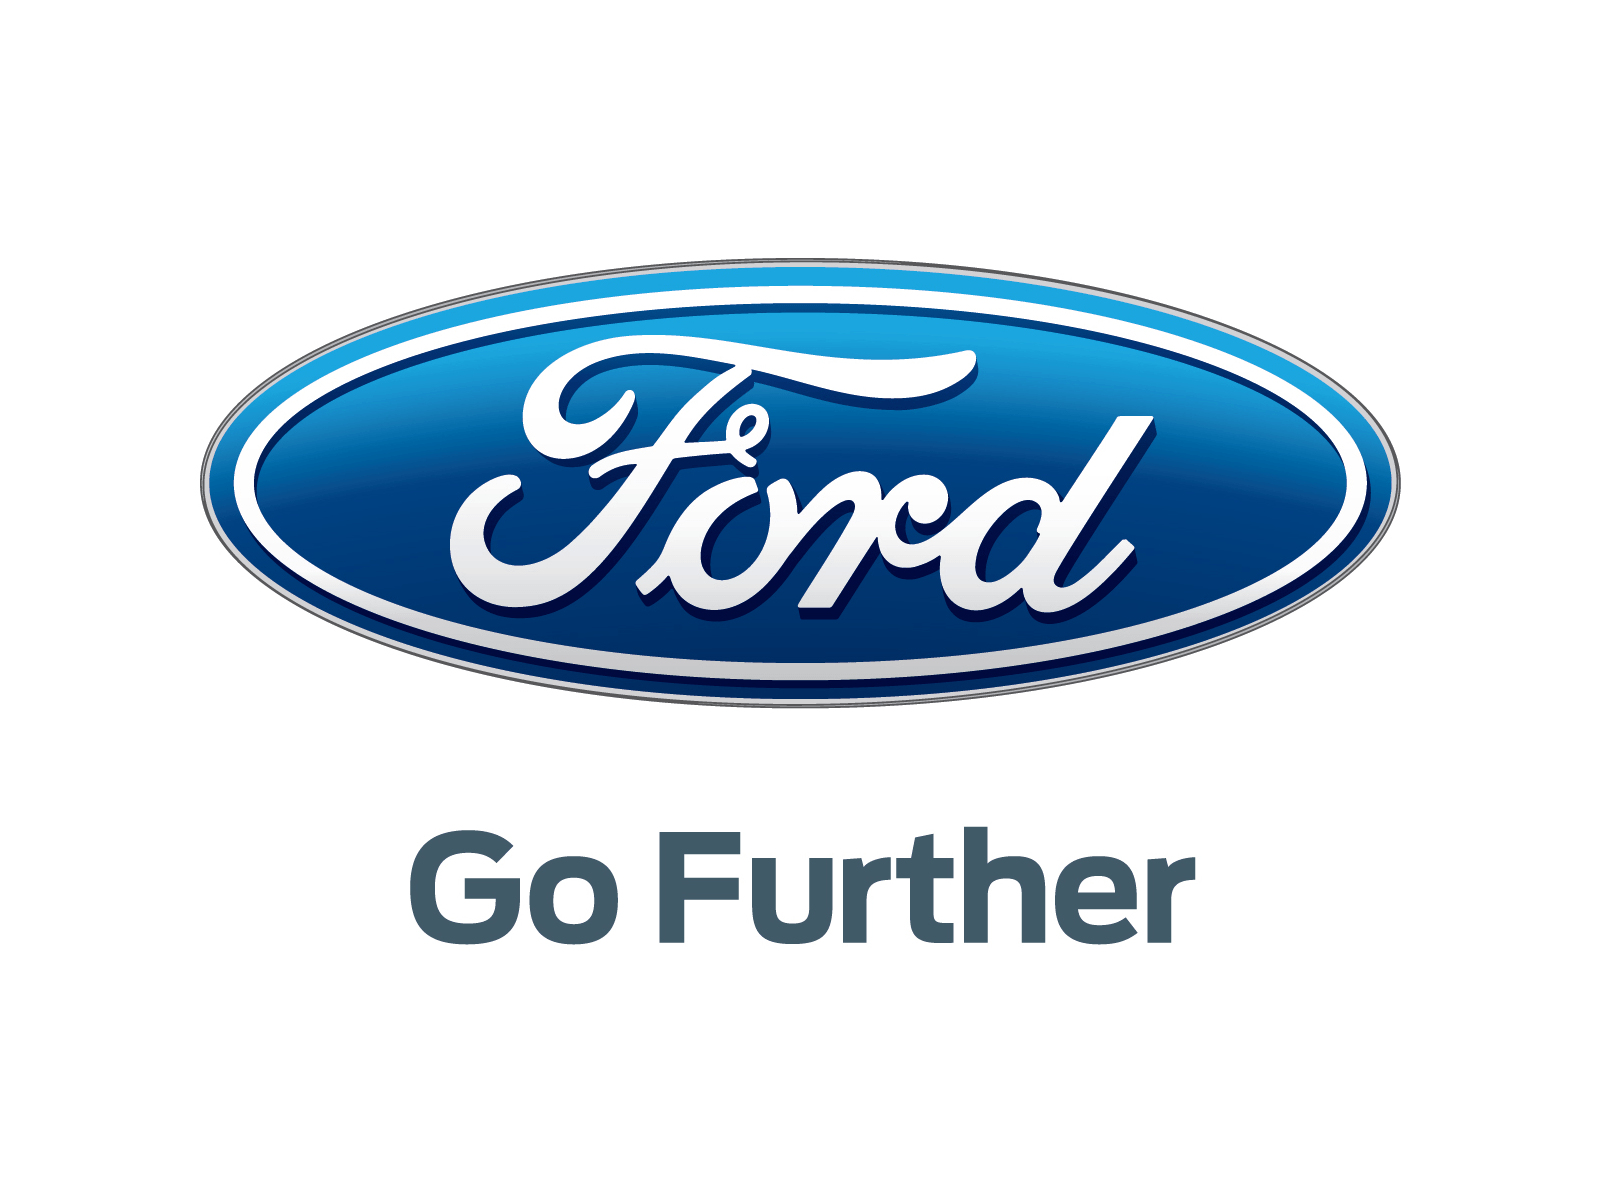 Ford Logo - Ford logo and slogan - Logok